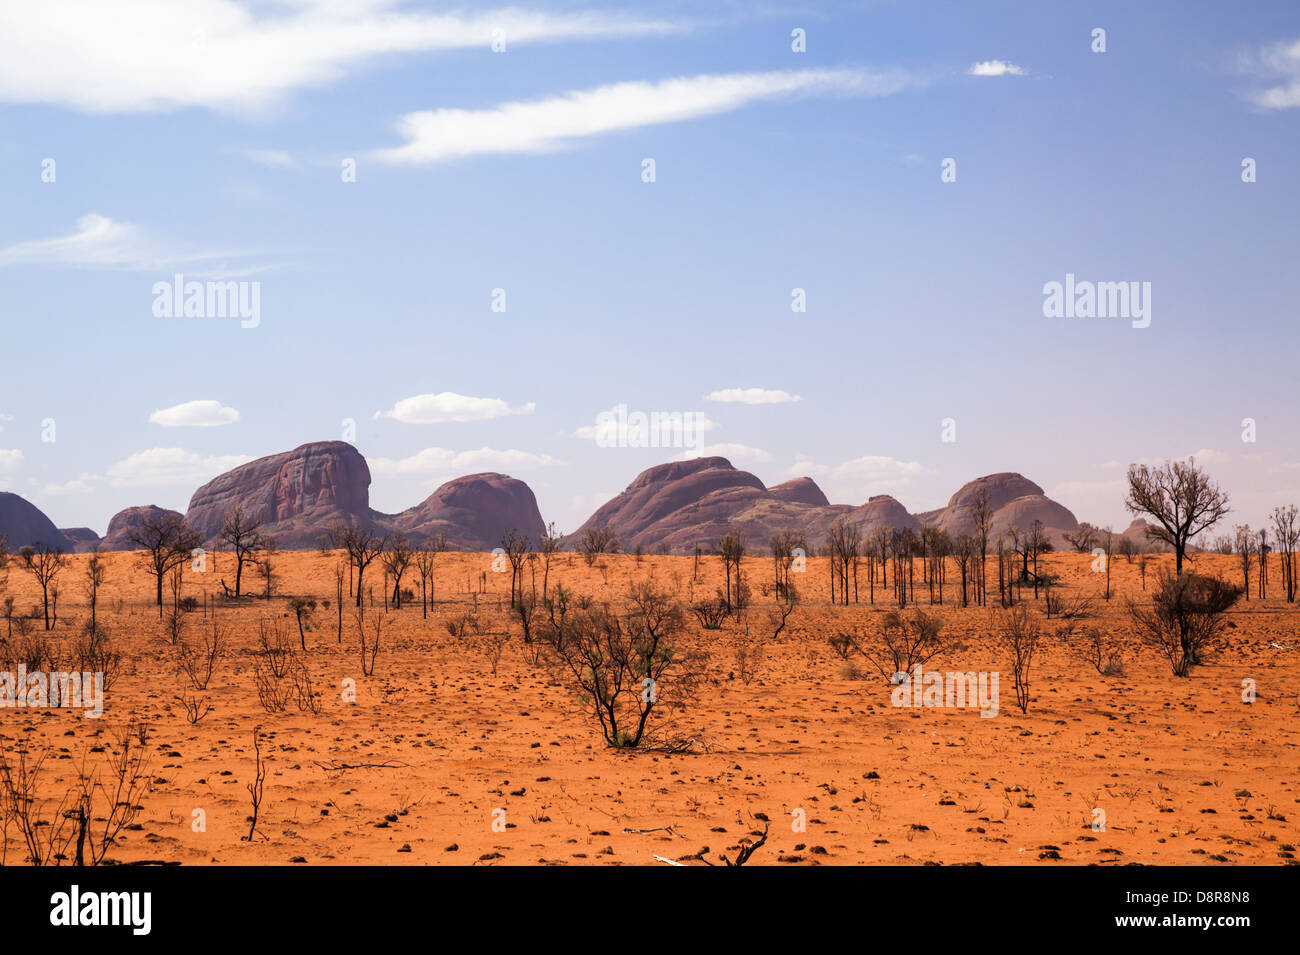 Kata Tjuta (mount Olgas) in the outback, red centre, Northern Territory, Australia. - Stock Image